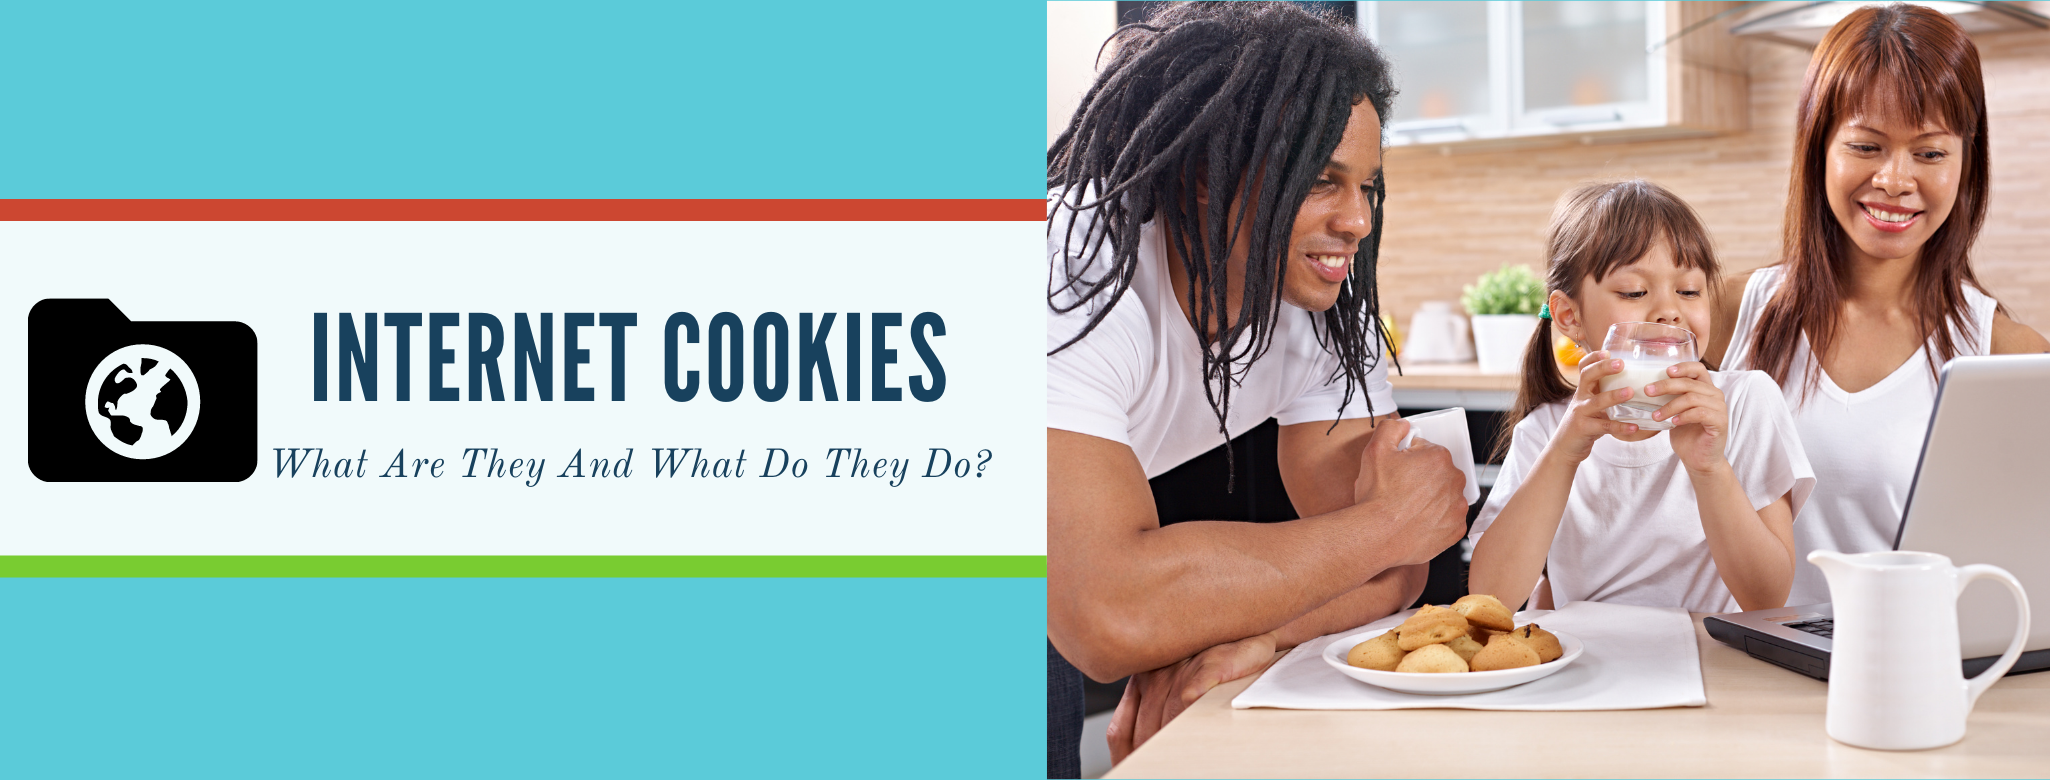 What Are Internet Cookies, And What Do They Do?